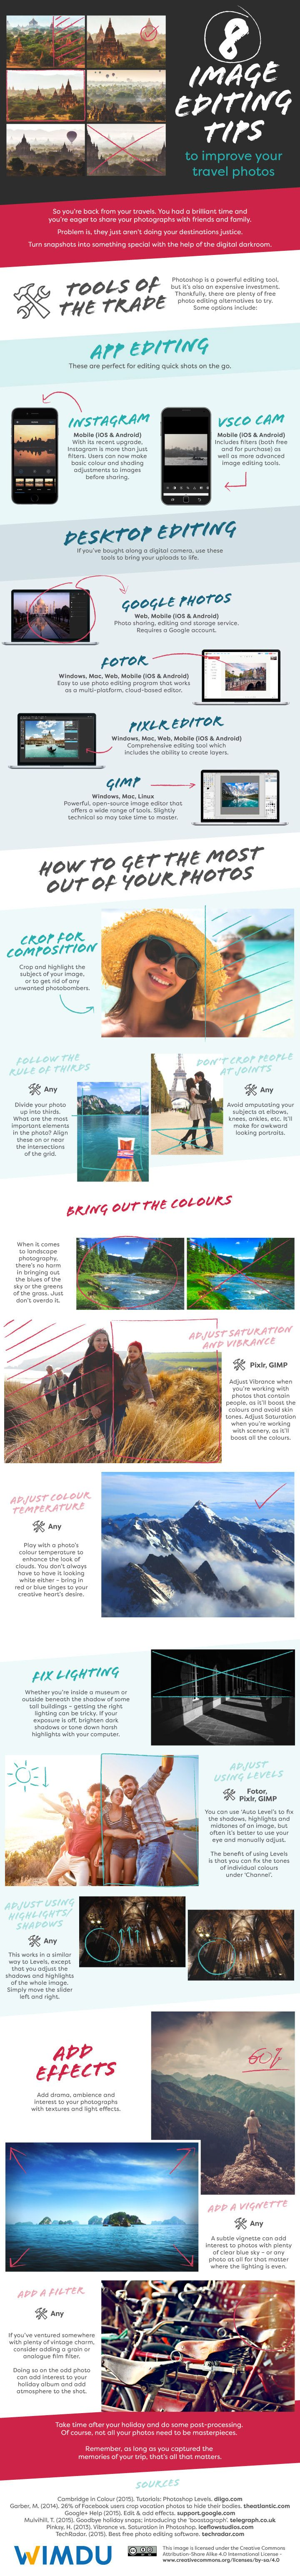 Editing Travel Photos: 8 Tips You Should Know [Infographic]